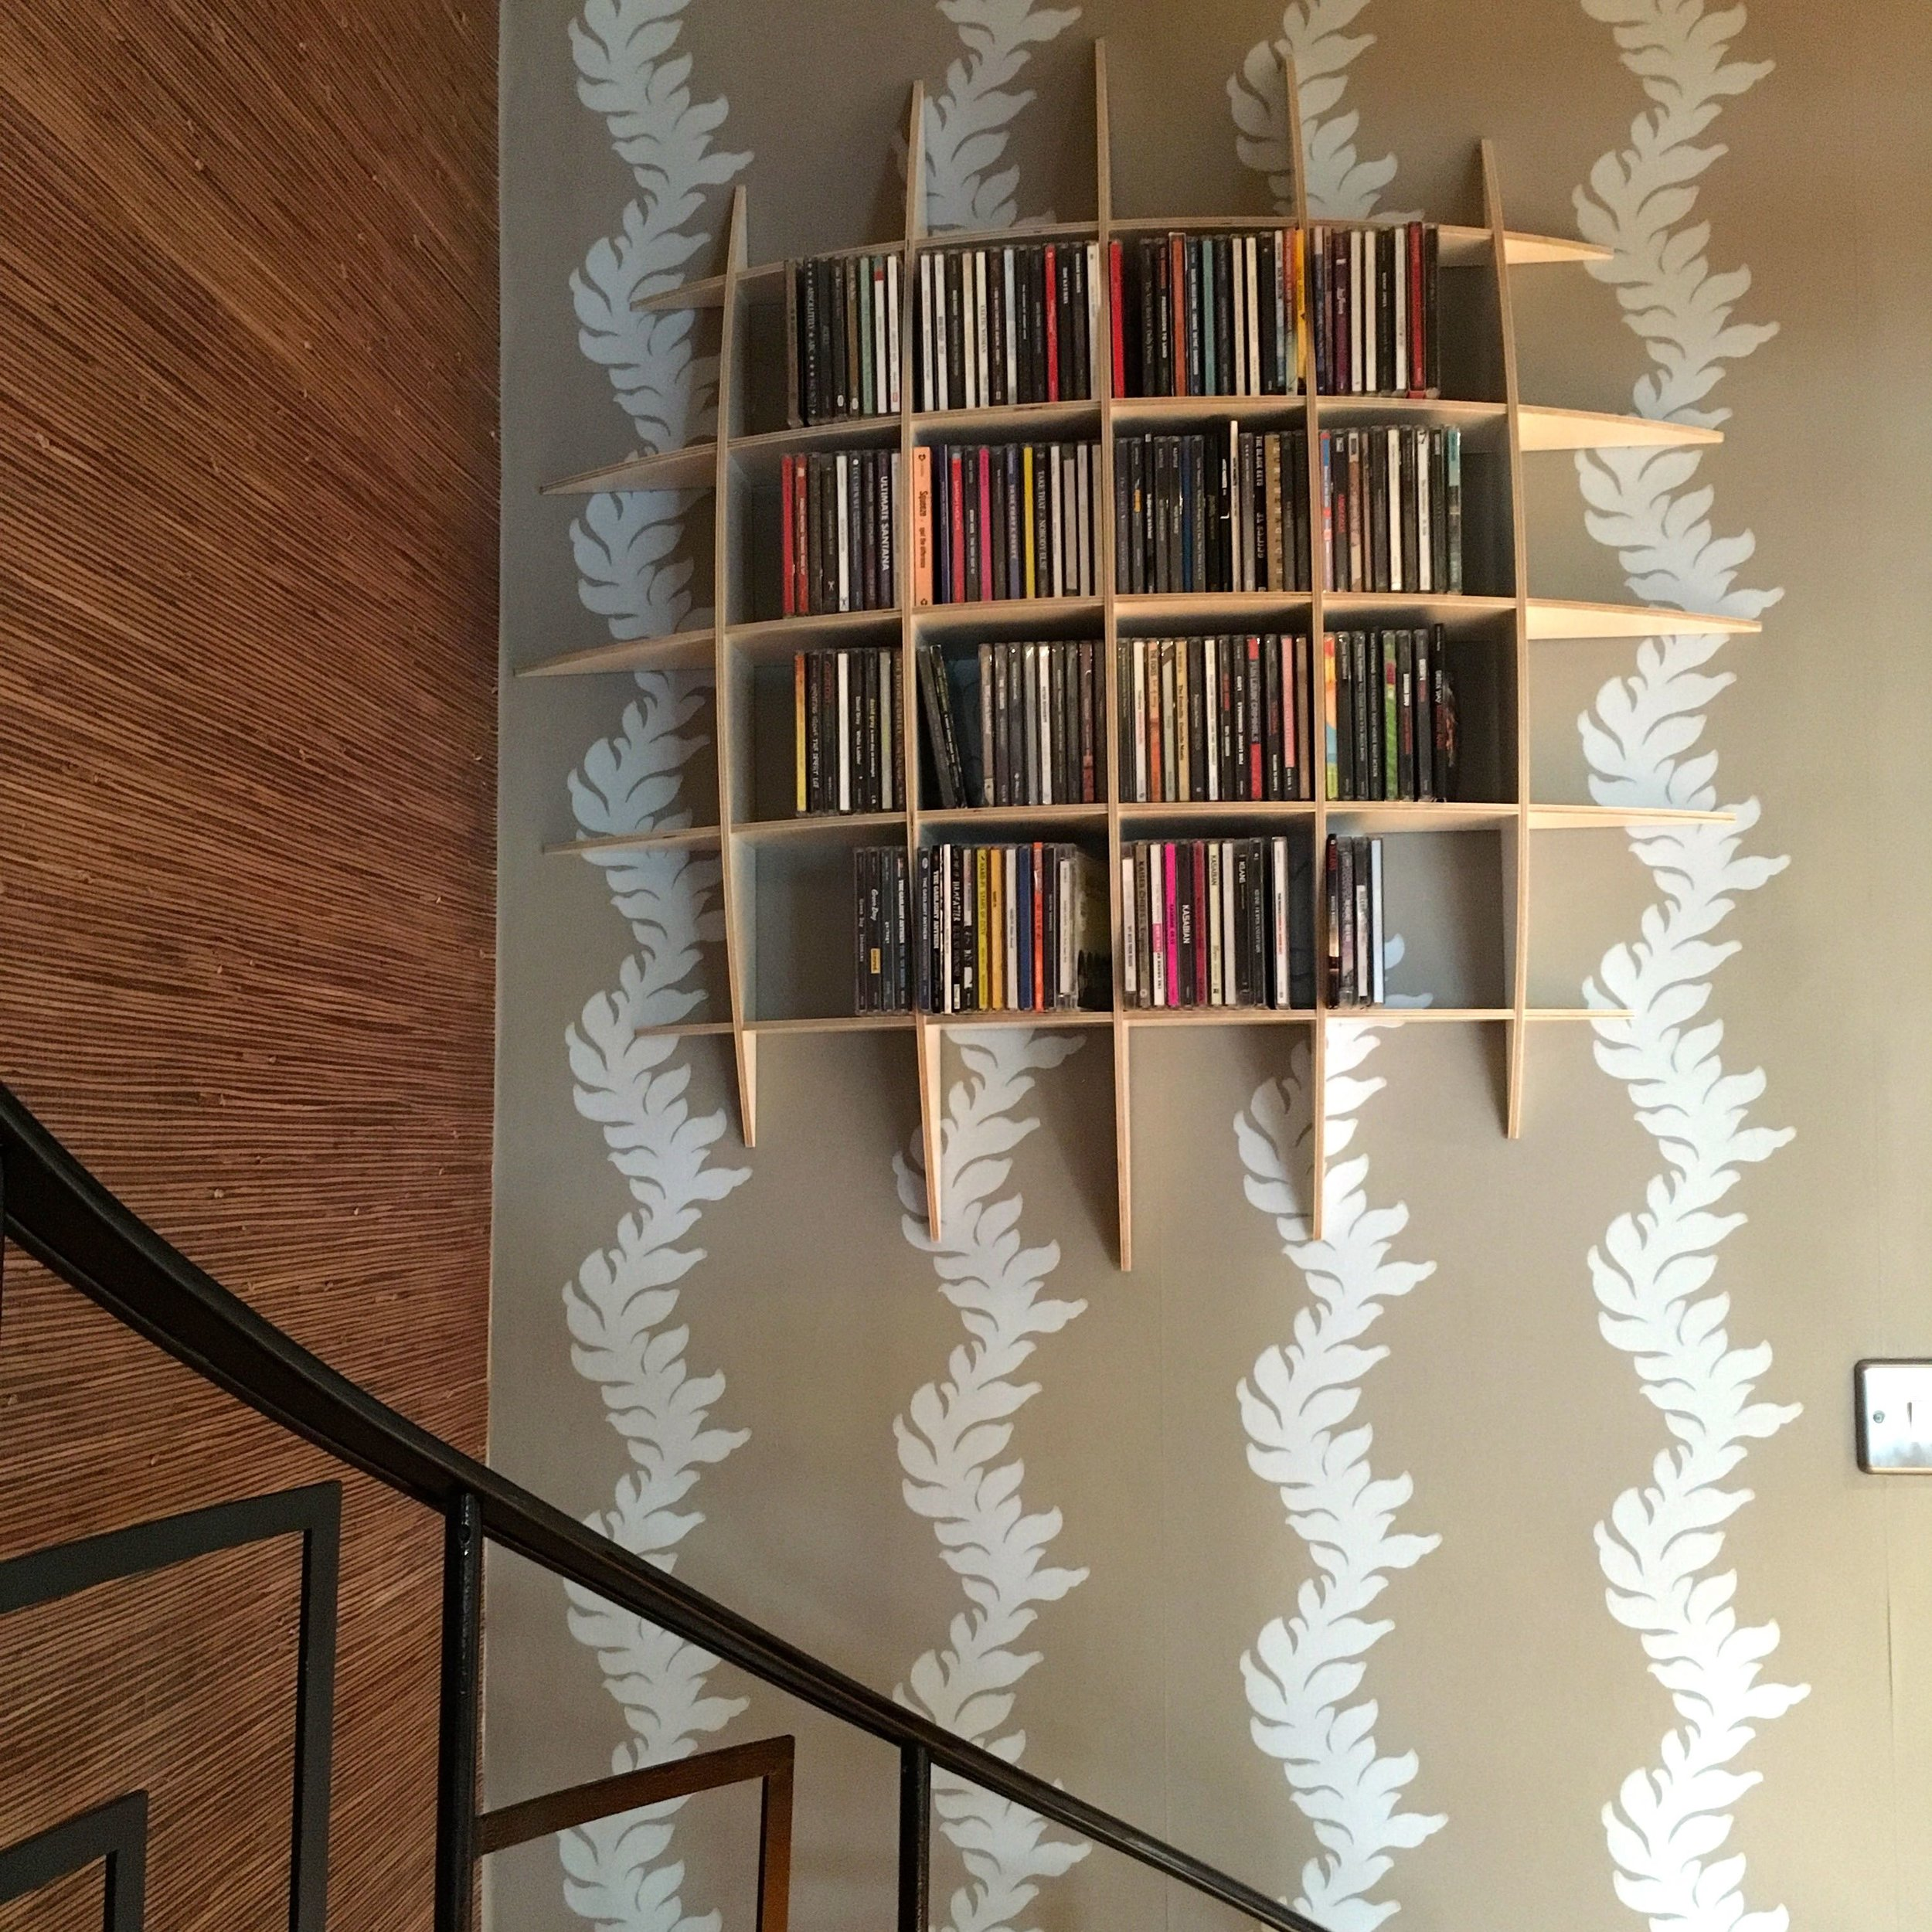 An unusual round shaped CD rack in the otherwise wasted space of our spiral staircase adds interest as well as texture #notcompletewithout